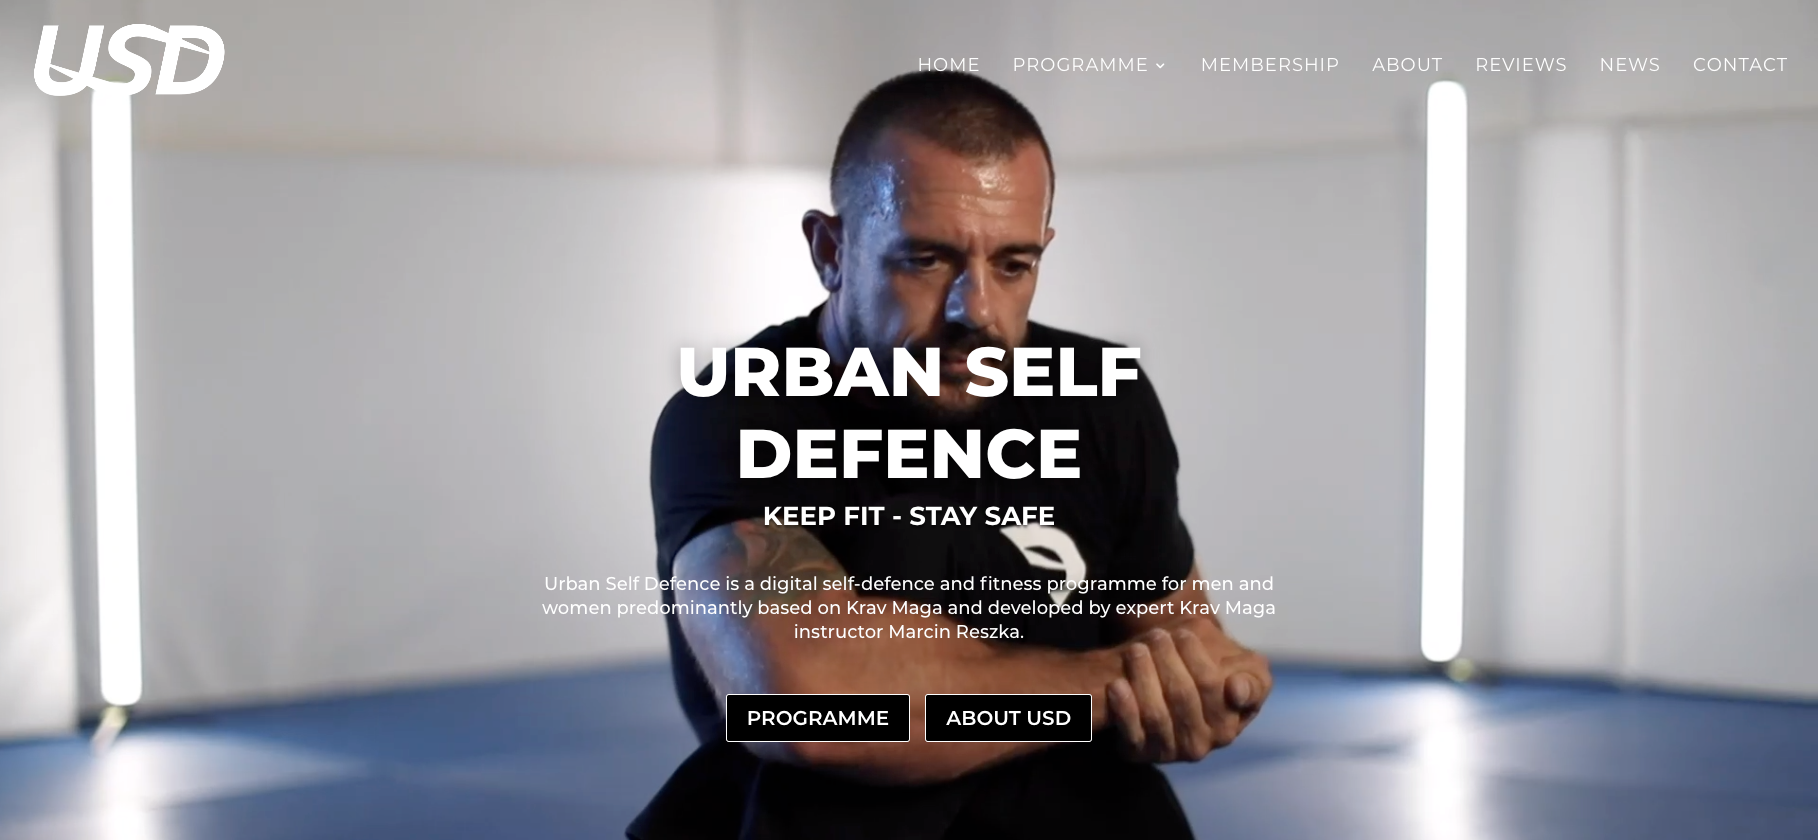 Fitness Programme - Urban Self Defence